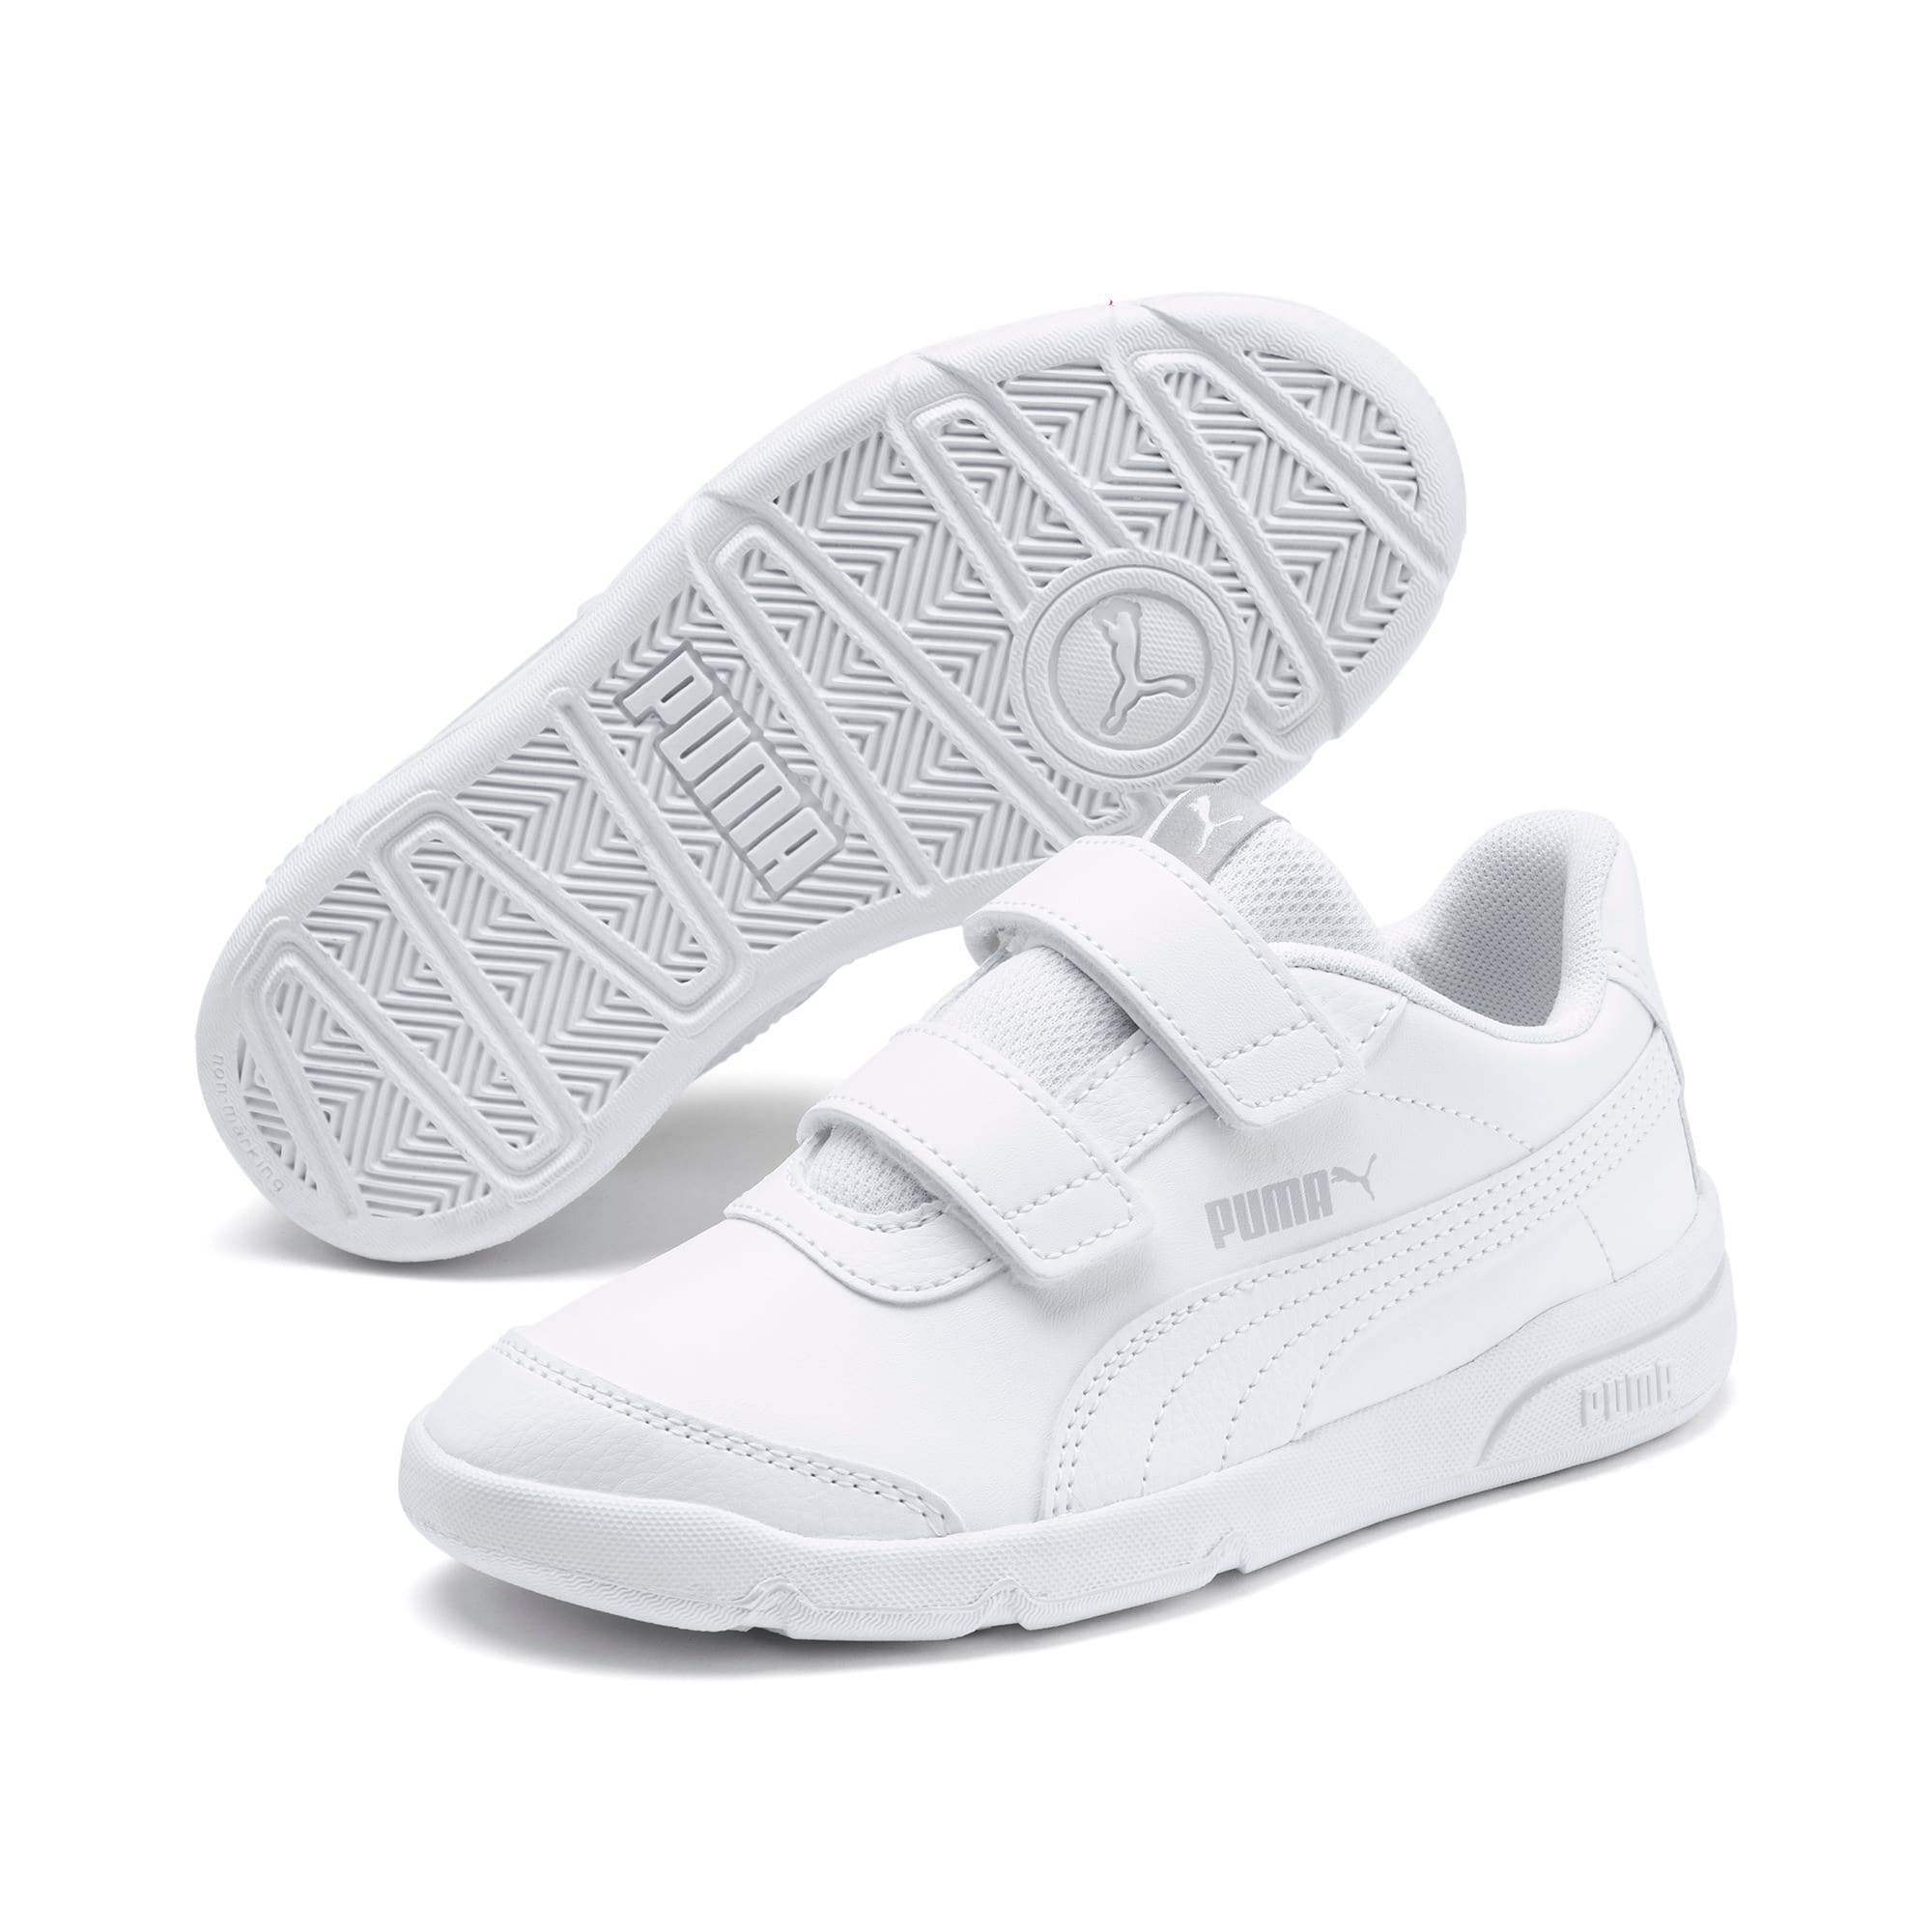 Thumbnail 2 of Stepfleex 2 SL VE V Kids' Trainers, Puma White-Puma White, medium